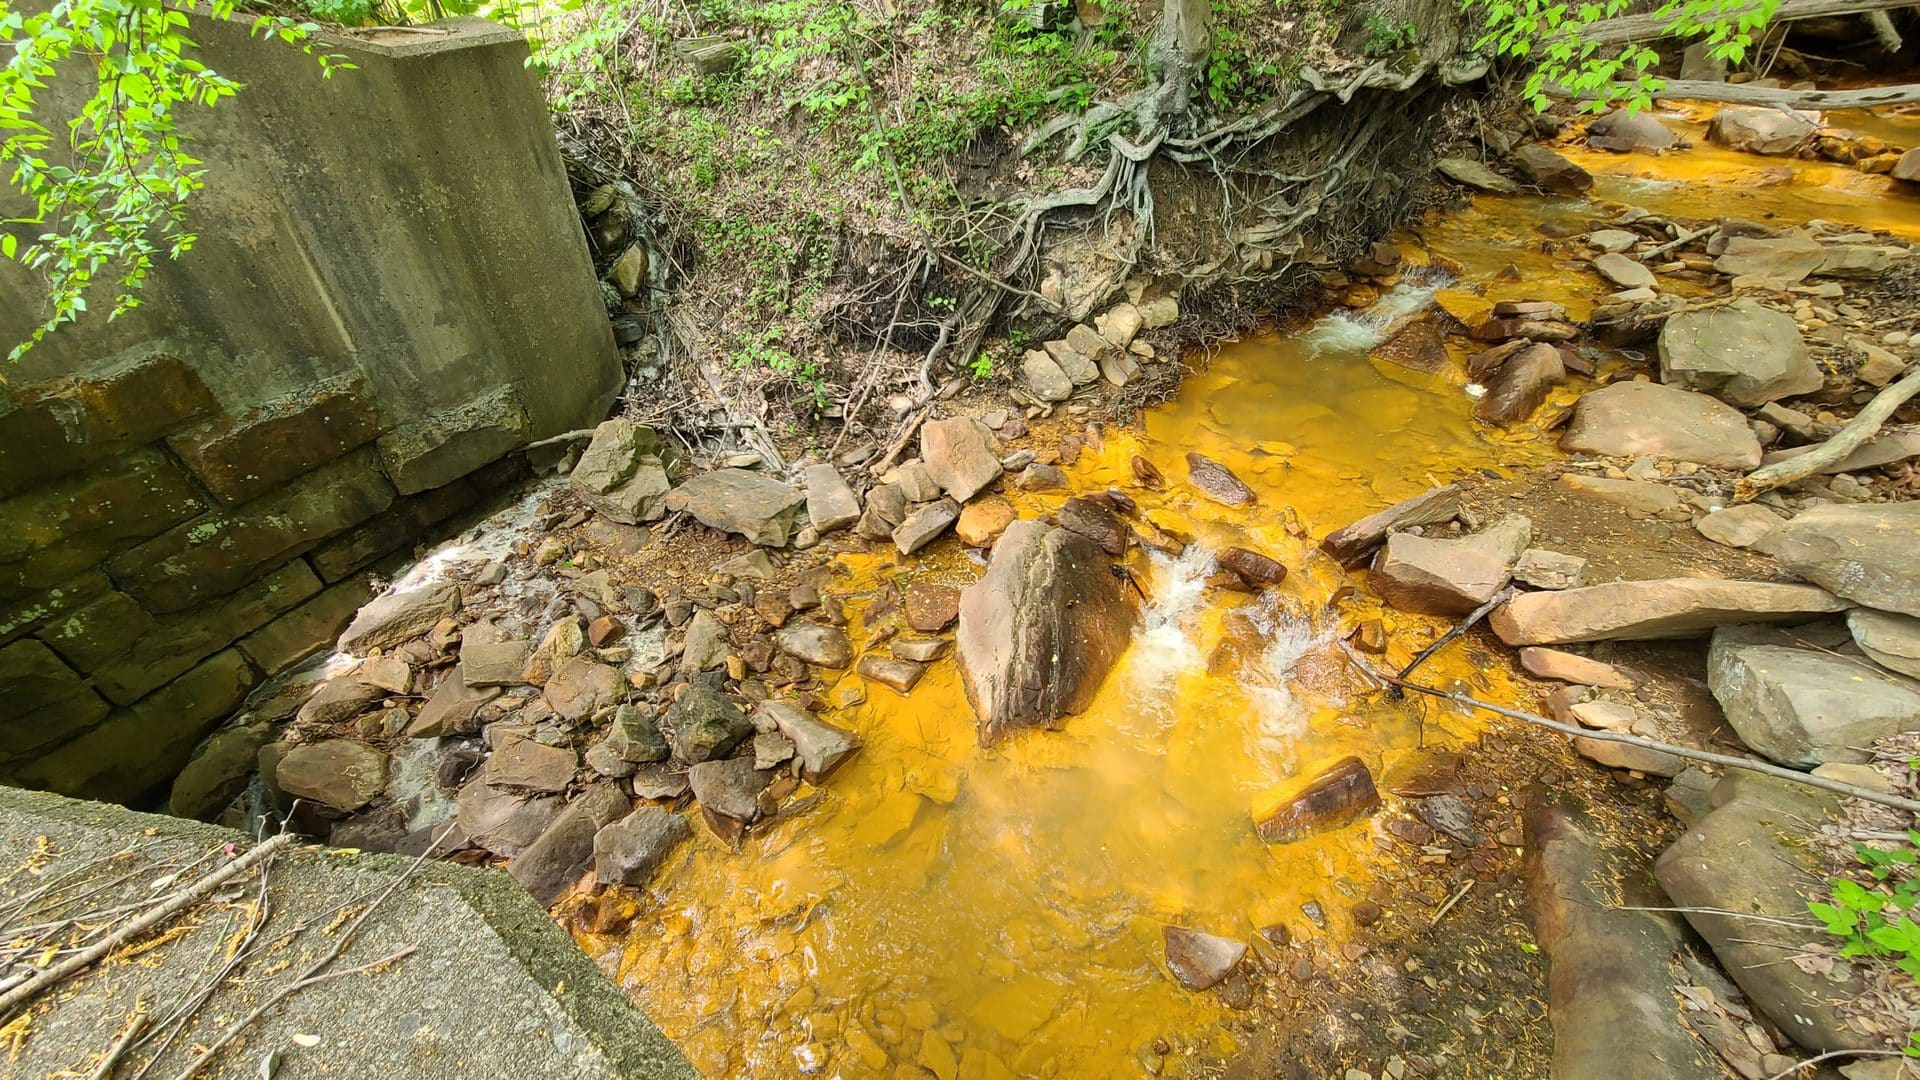 Polluted orange water flows through a stony creek. Chalky white water trickles in from the side.